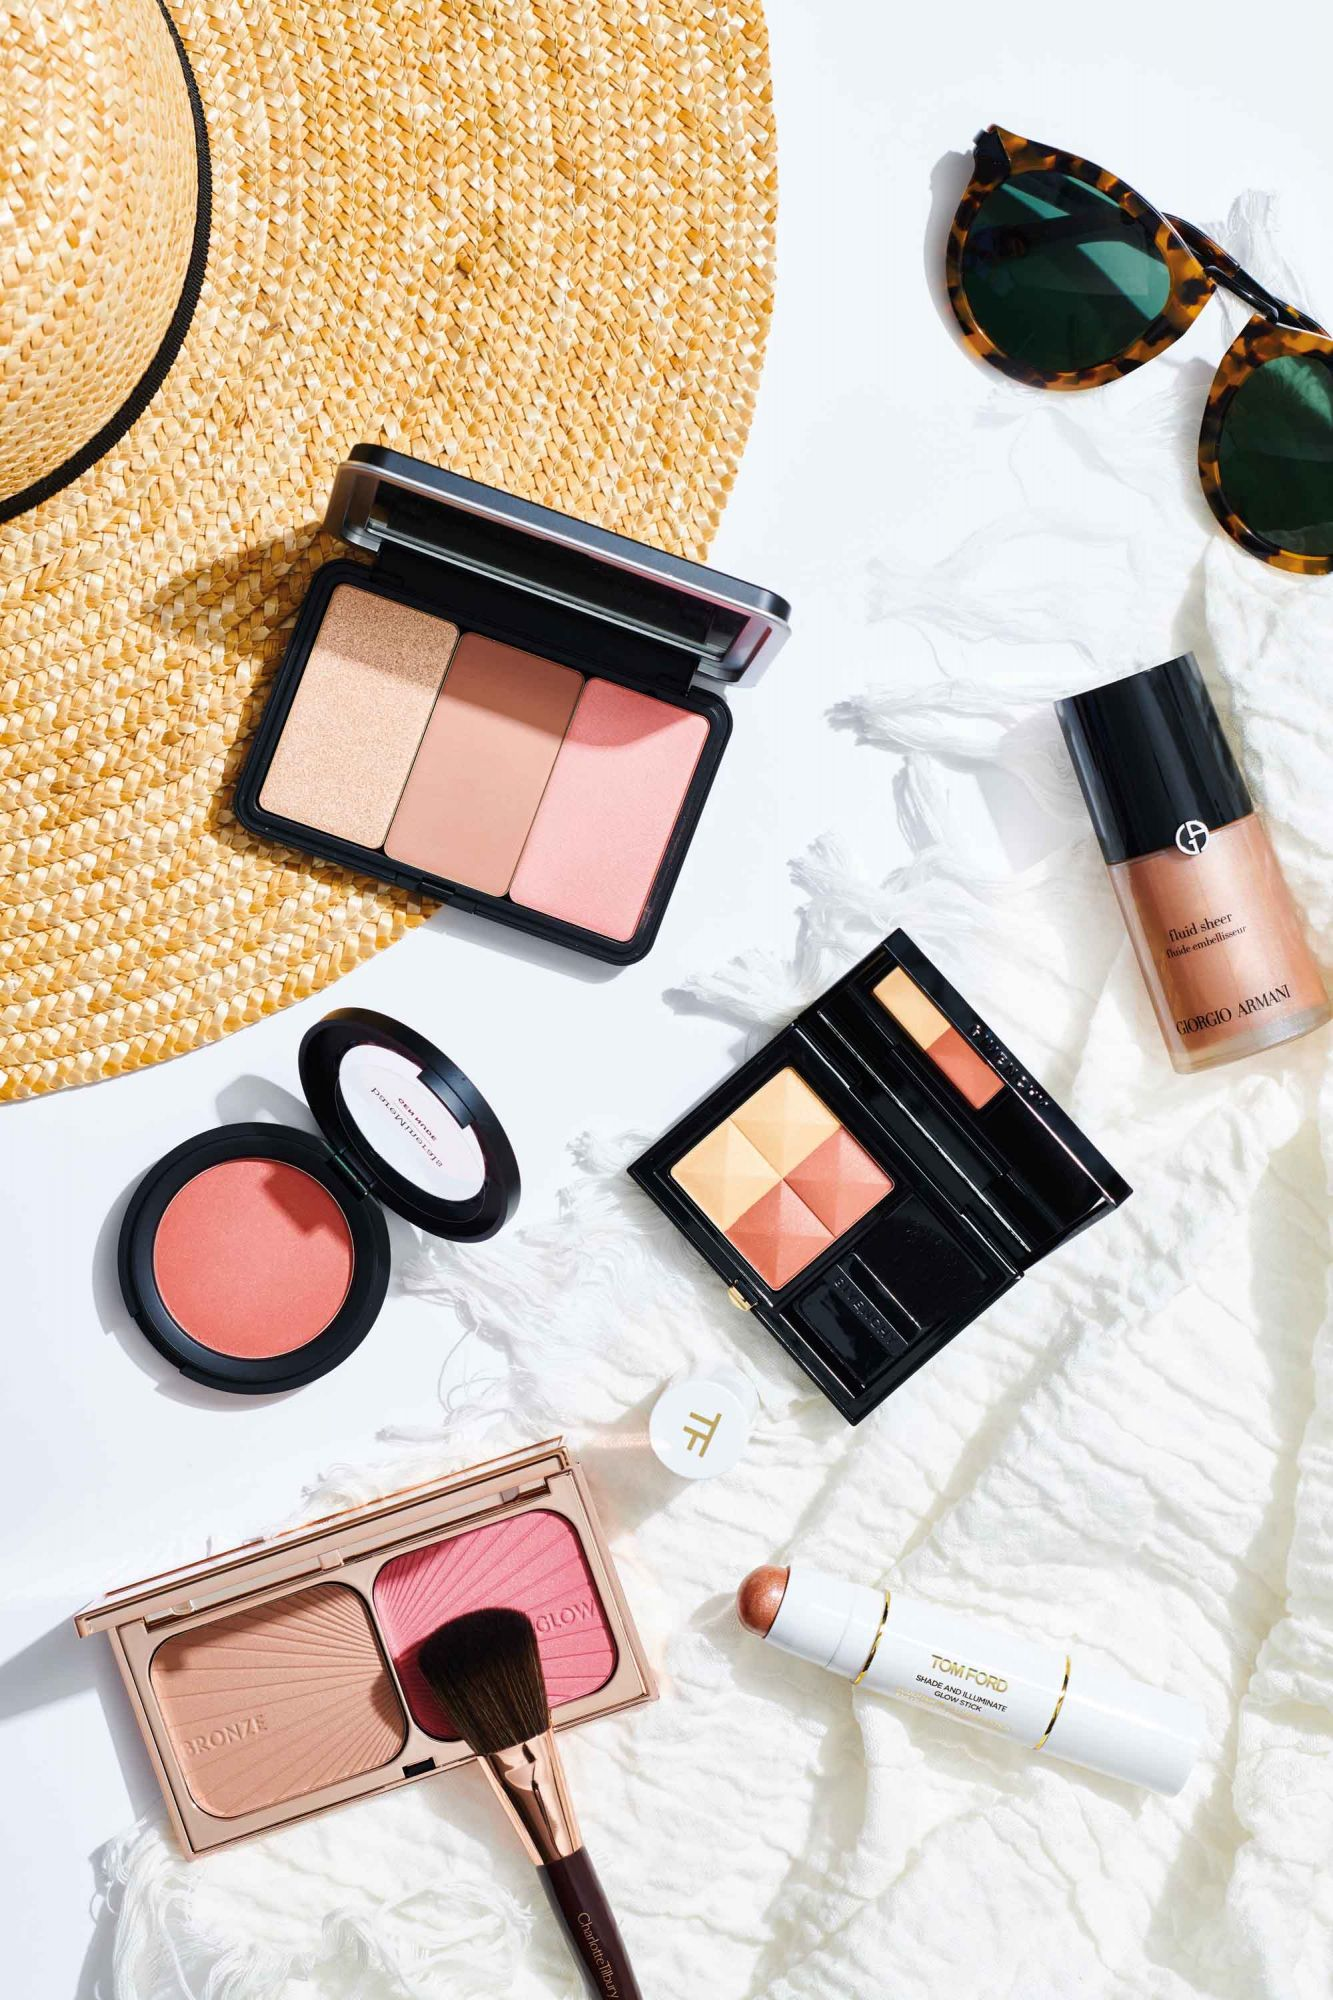 6 Products We Recommend For That Perfect Summer Glow